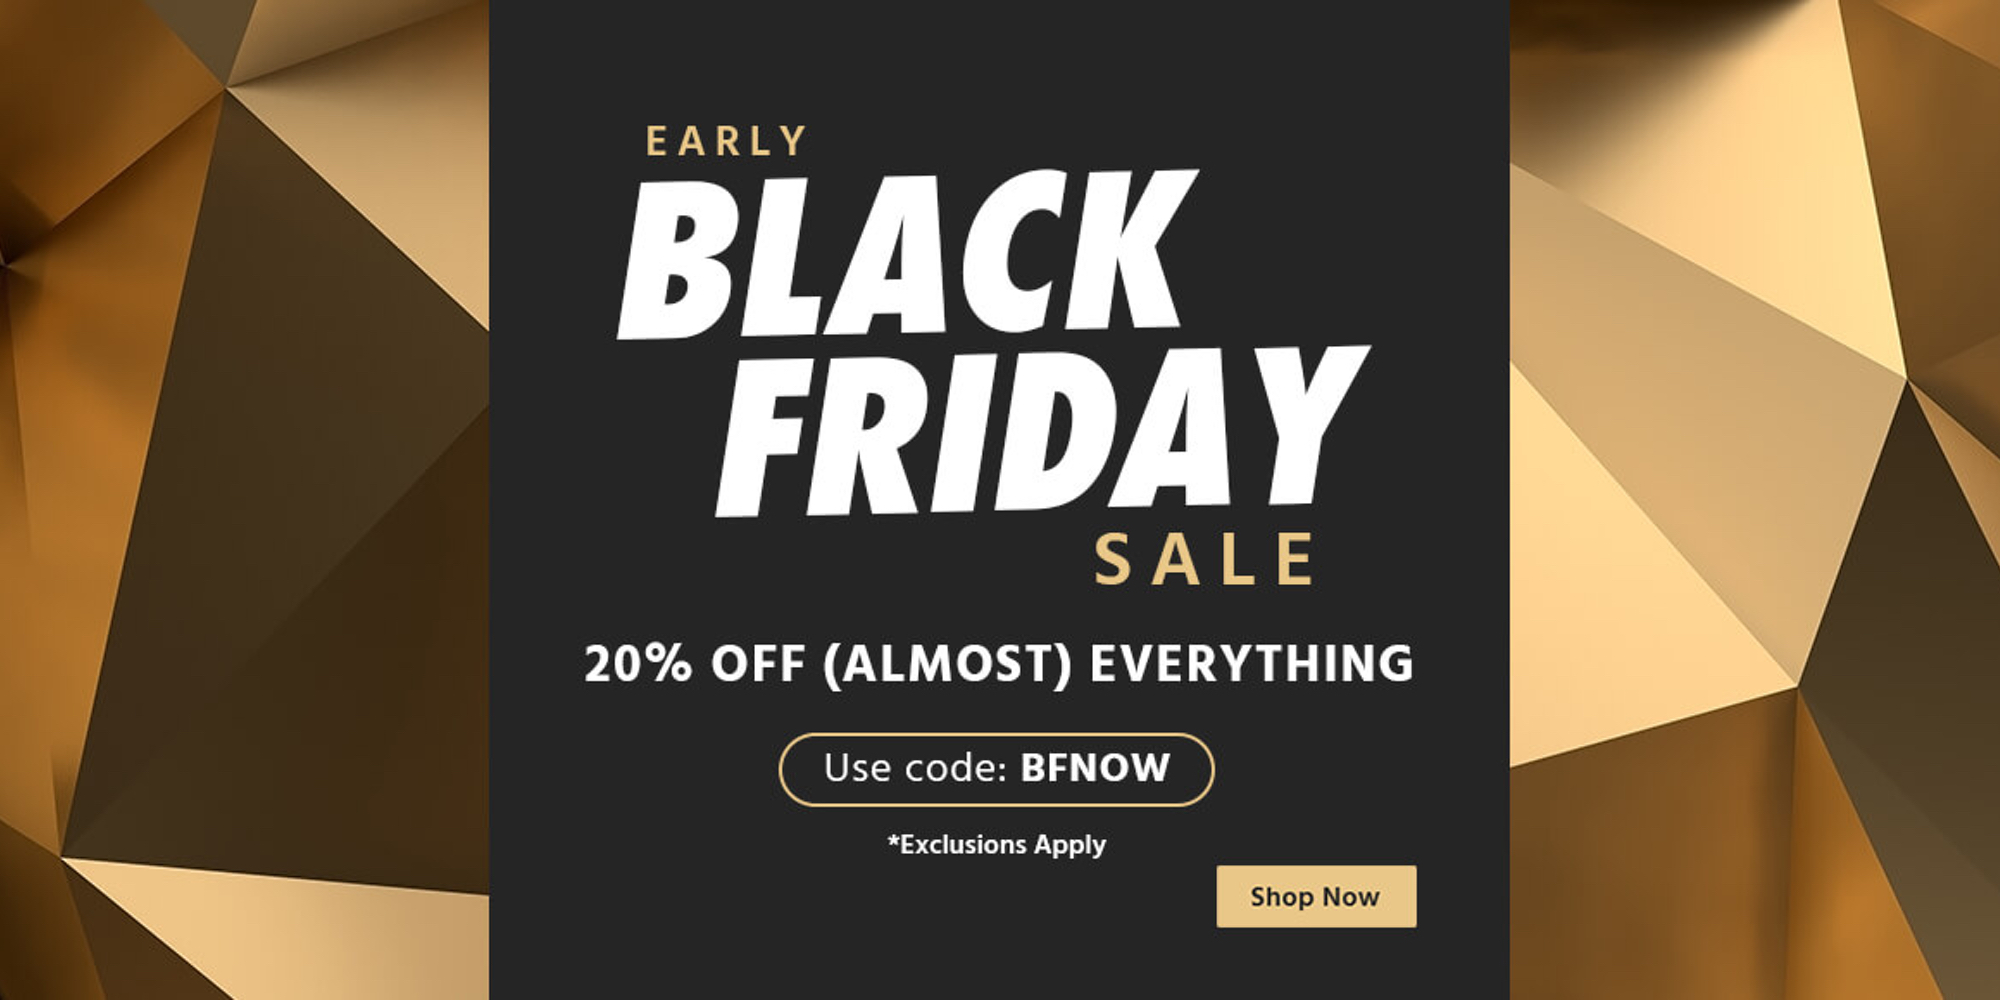 Black Friday Sale Monoprice S Early Black Friday Sale Takes 20 Off Sitewide For